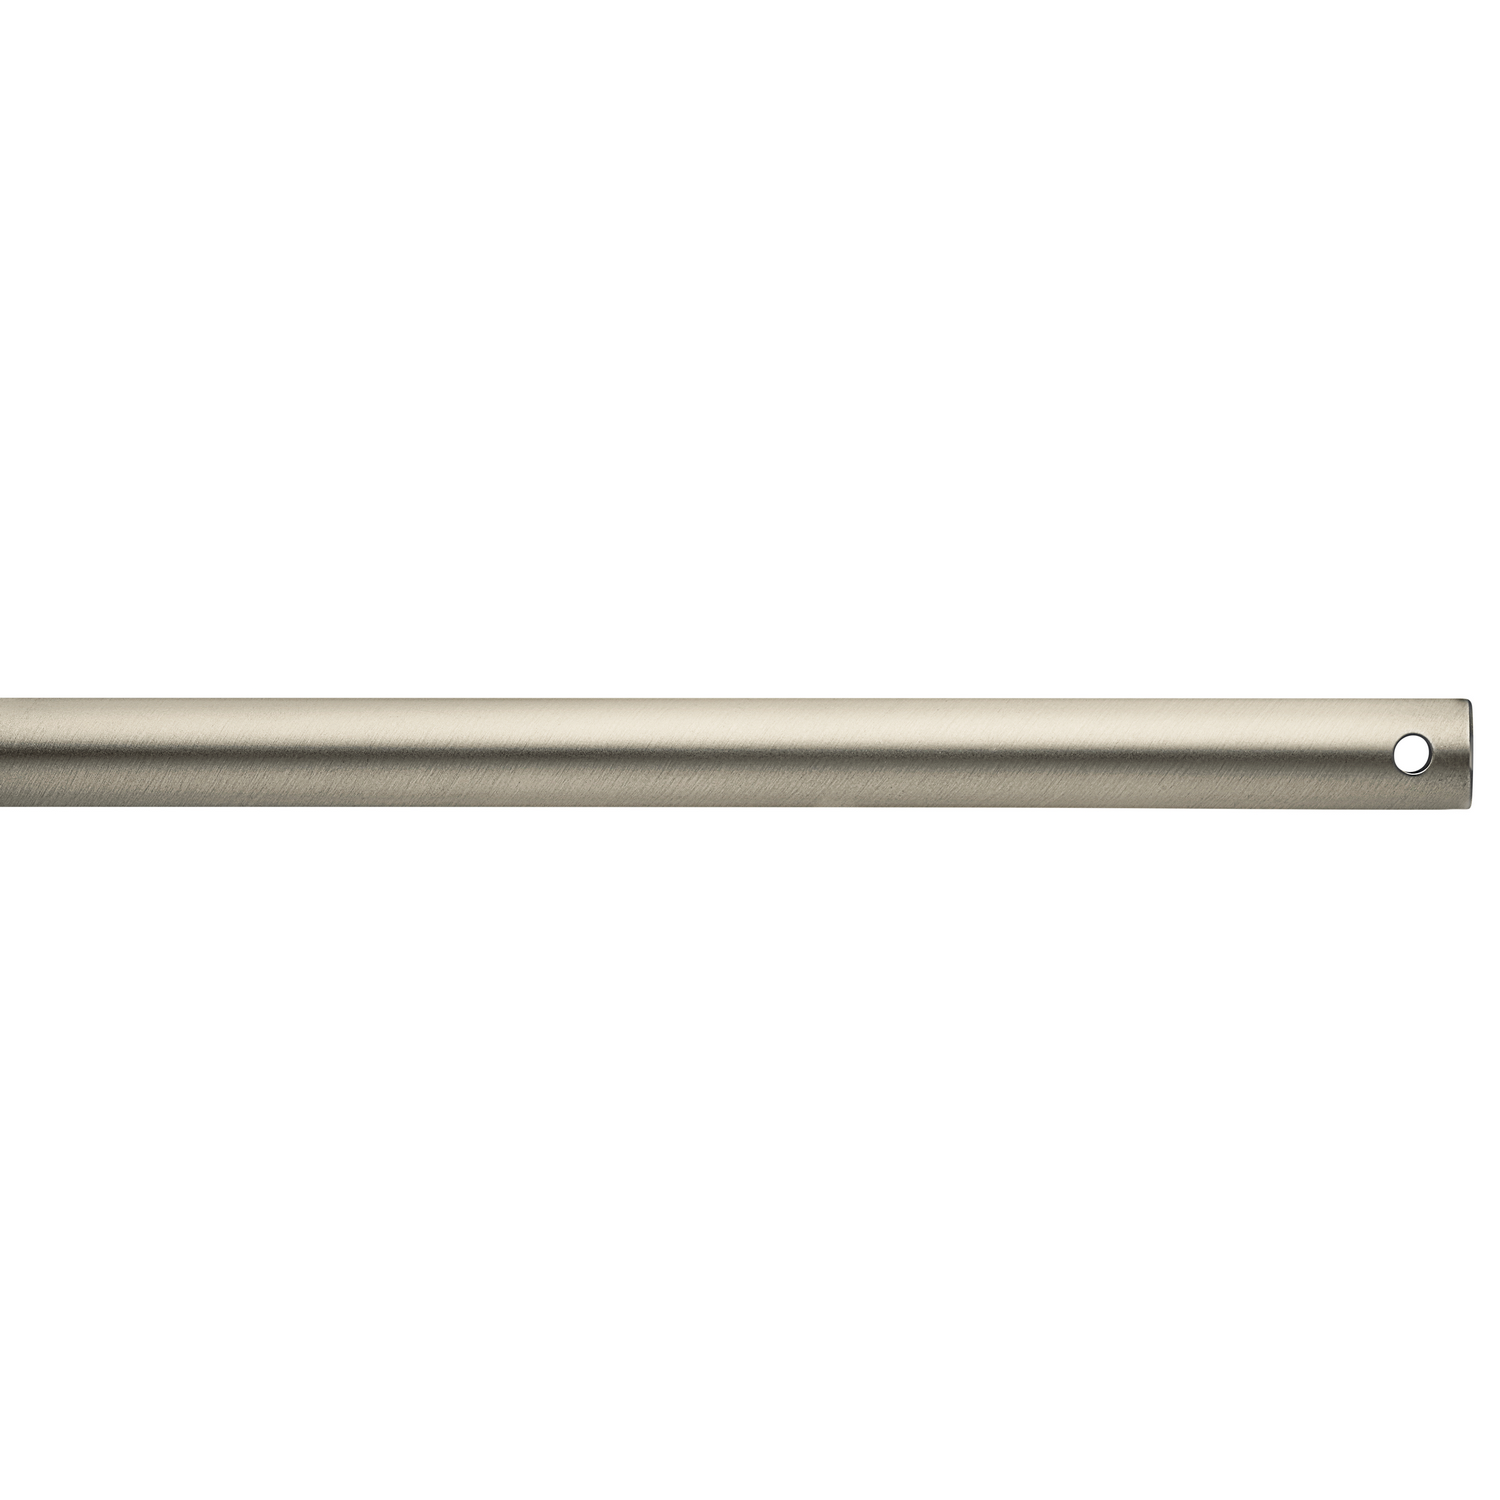 Down Rod from the Basics collection by Kichler 456NI